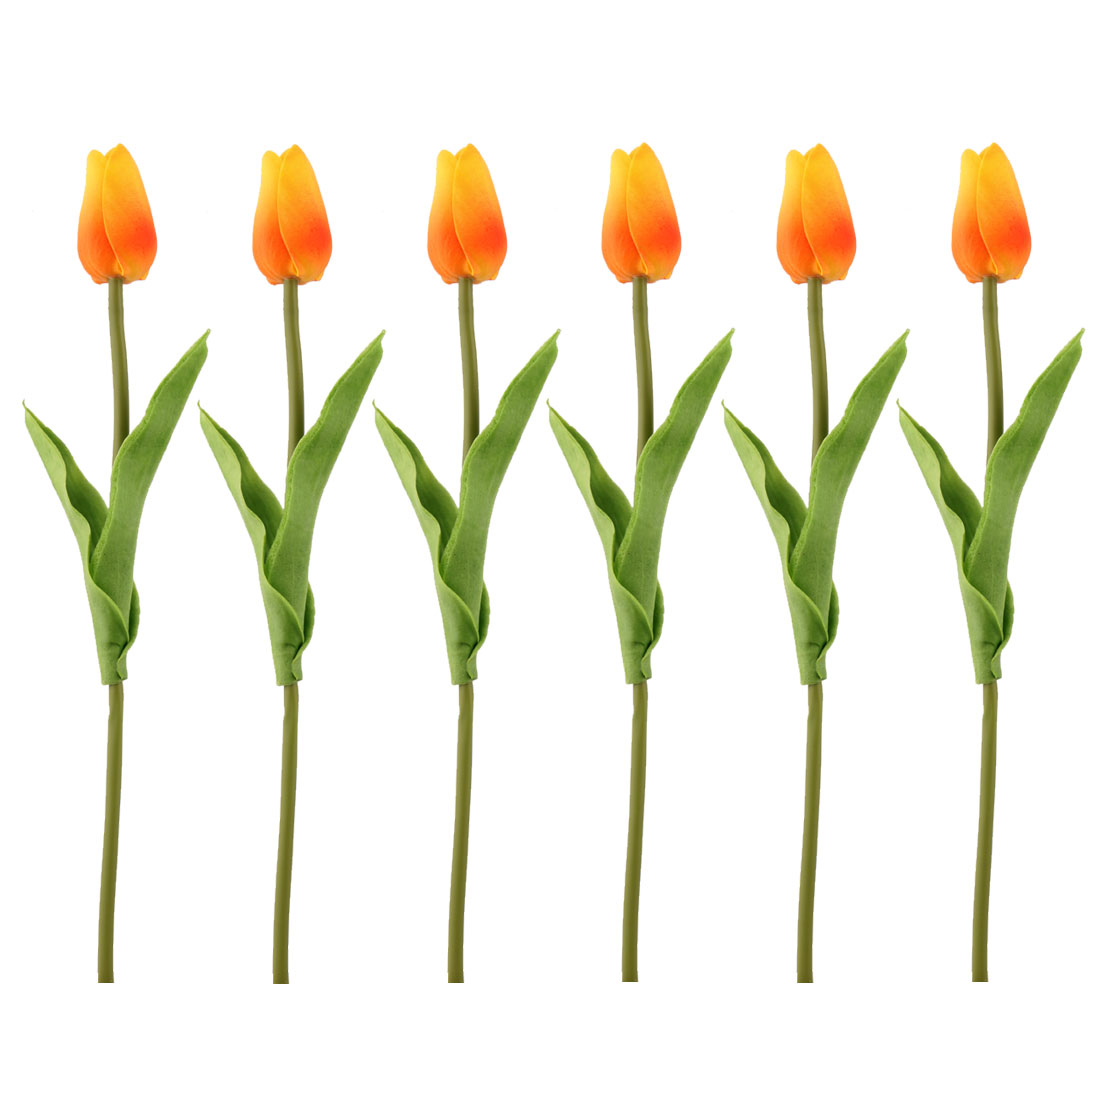 Wedding Tulip Design Handhold Artificial Flower Bouquet Yellow Orange 6pcs